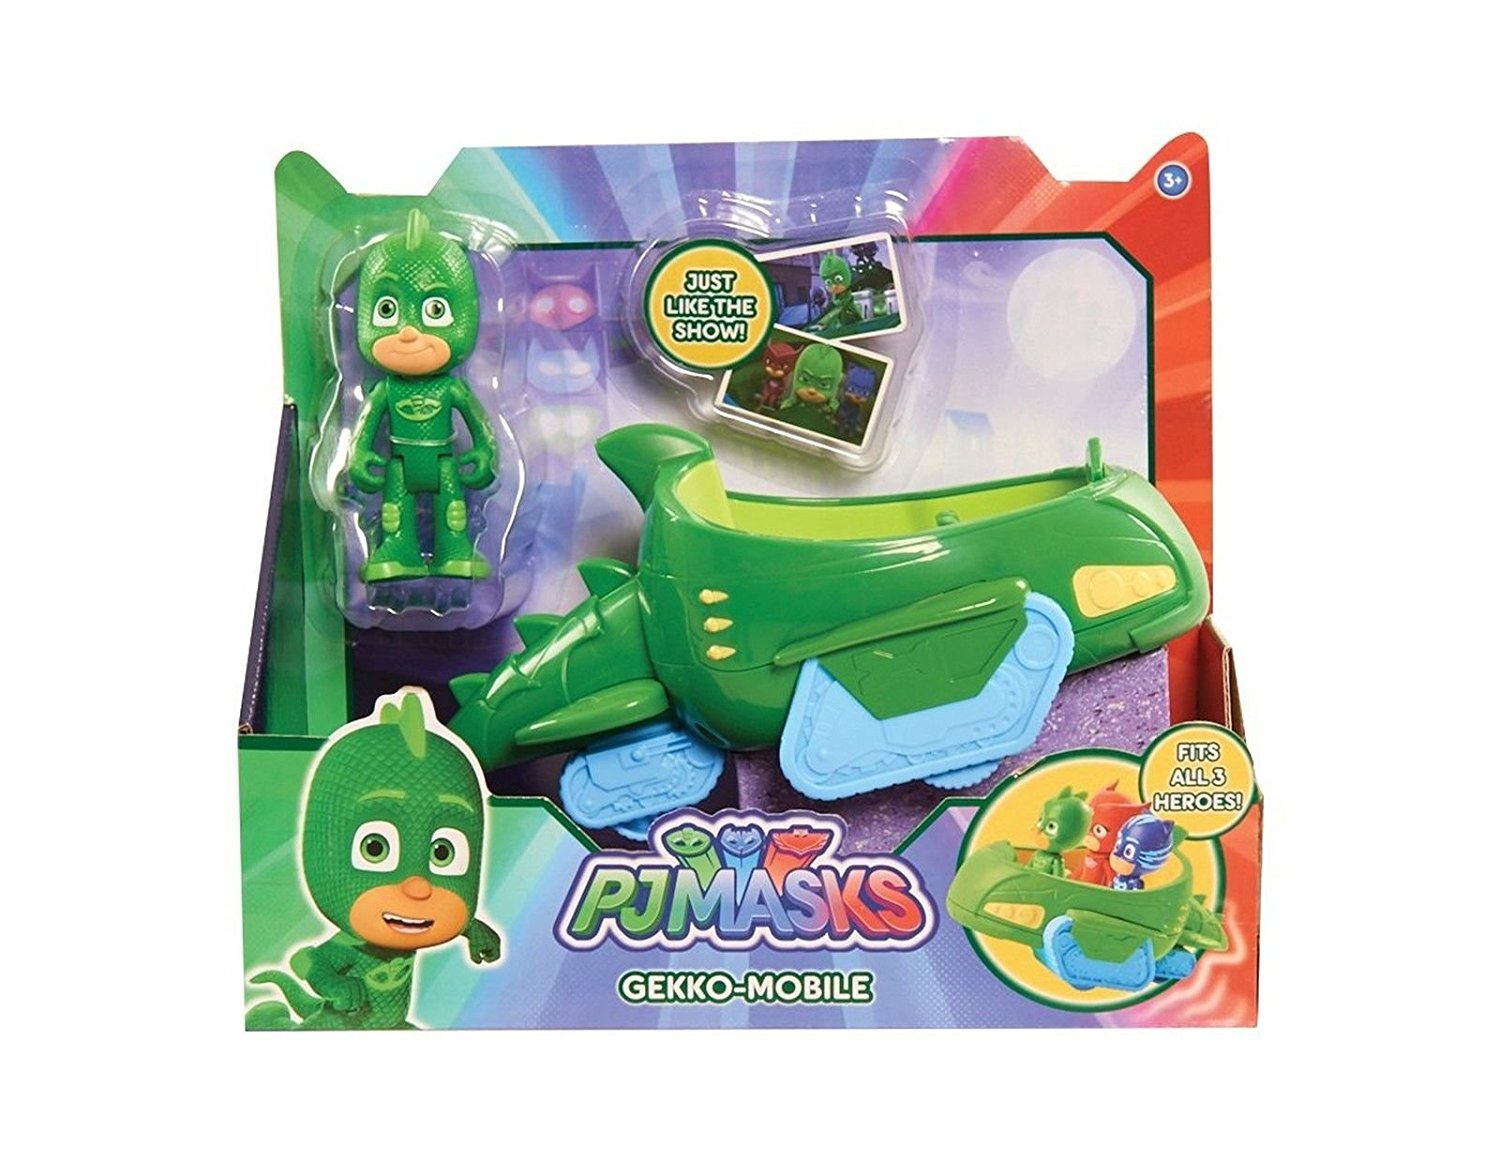 PJ Masks GEKKO-MOBILE - Just Like The Show - Fits All 3 Heroes!: Toys & Games